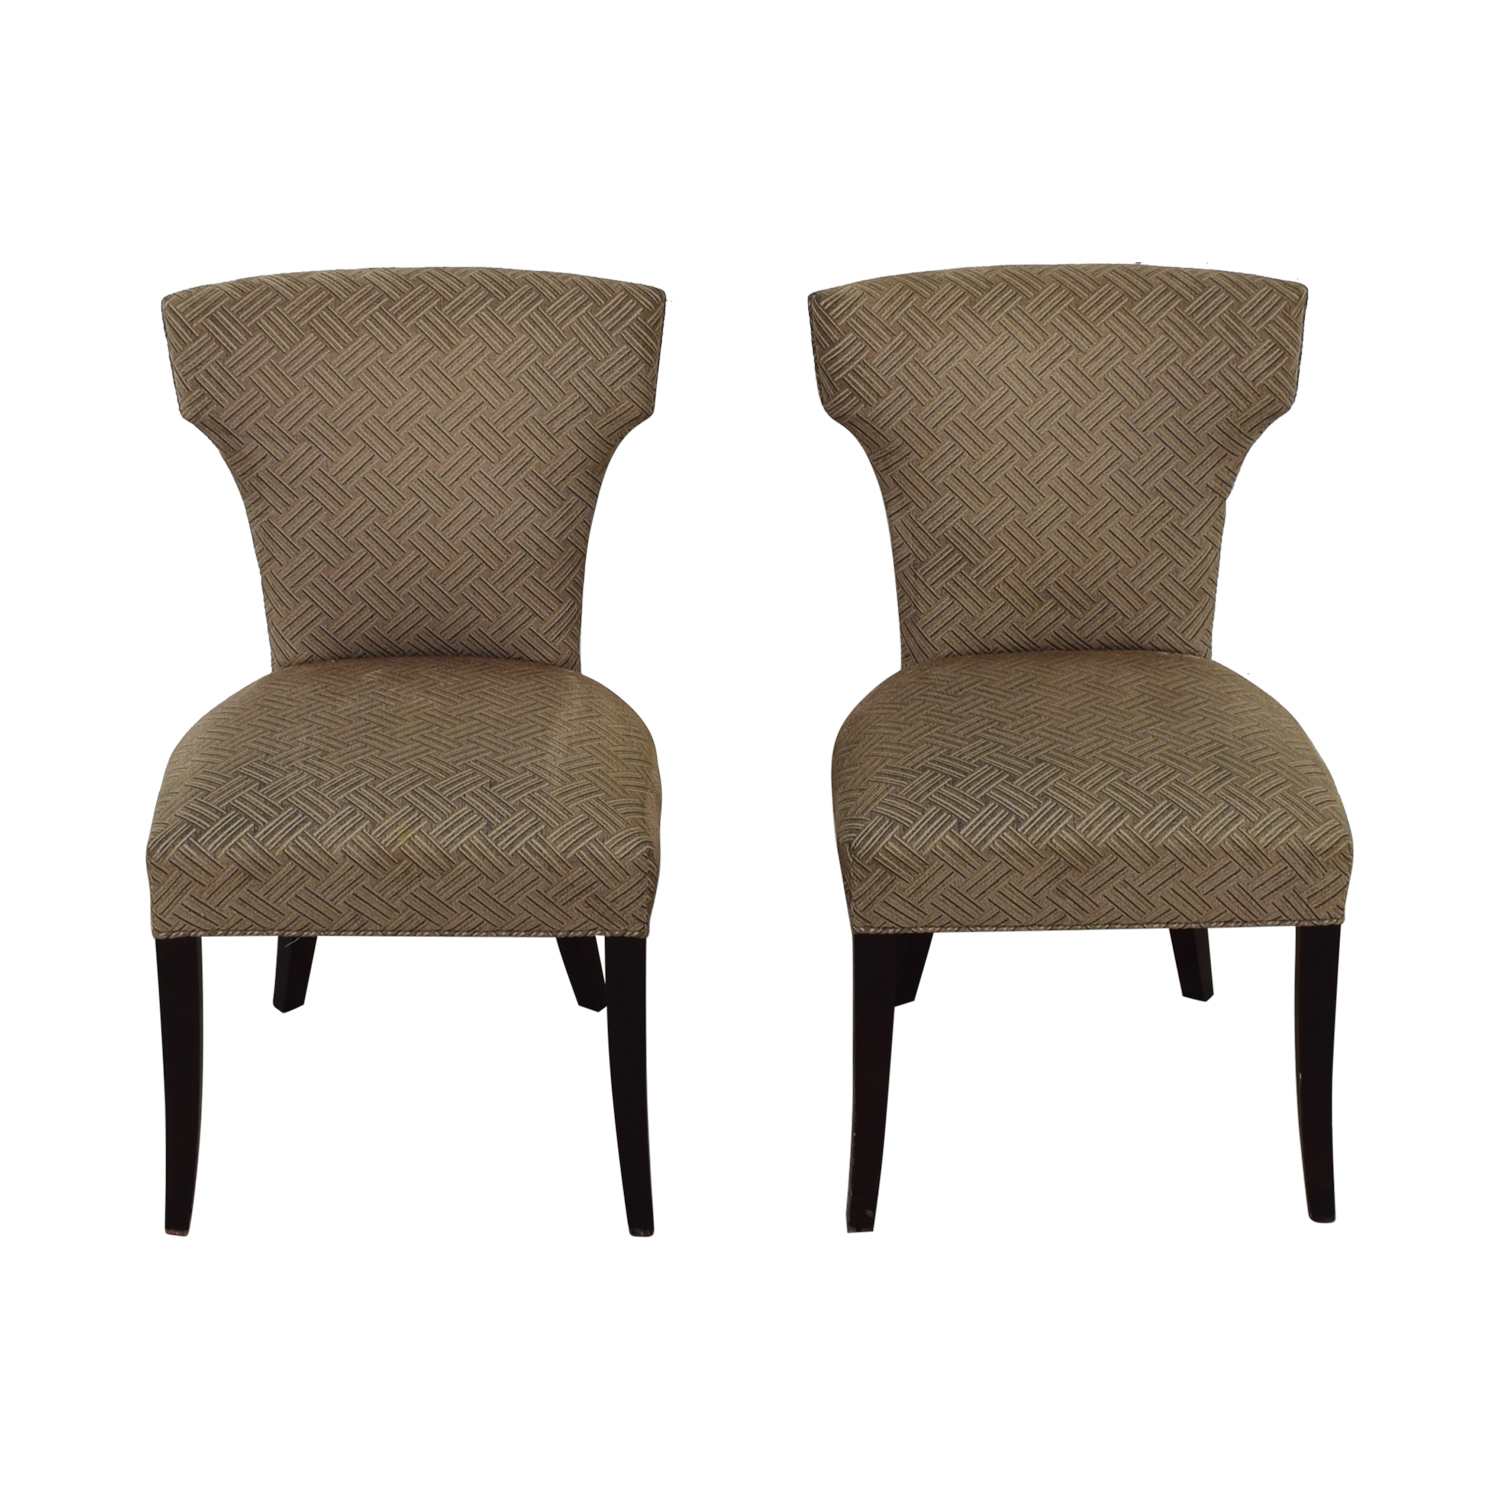 shop Crate & Barrel Sasha Upholstered Dining Chairs Crate & Barrel Chairs